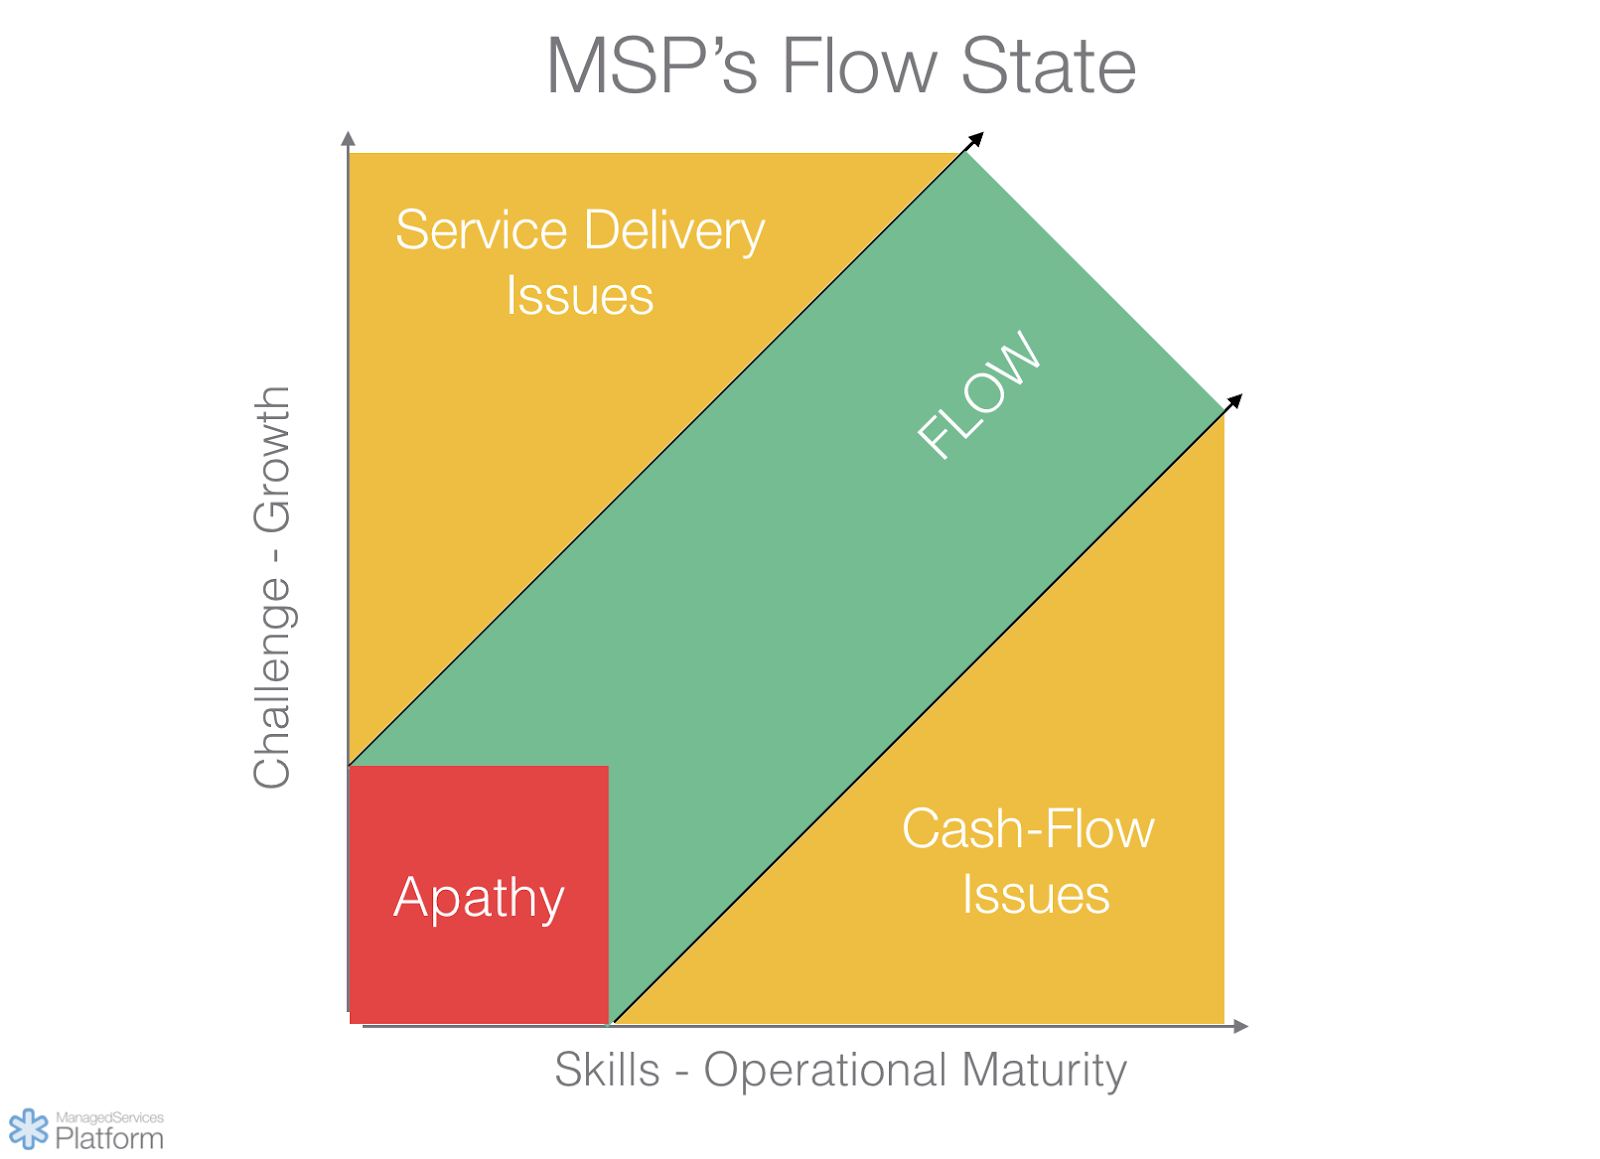 MSP's flow state